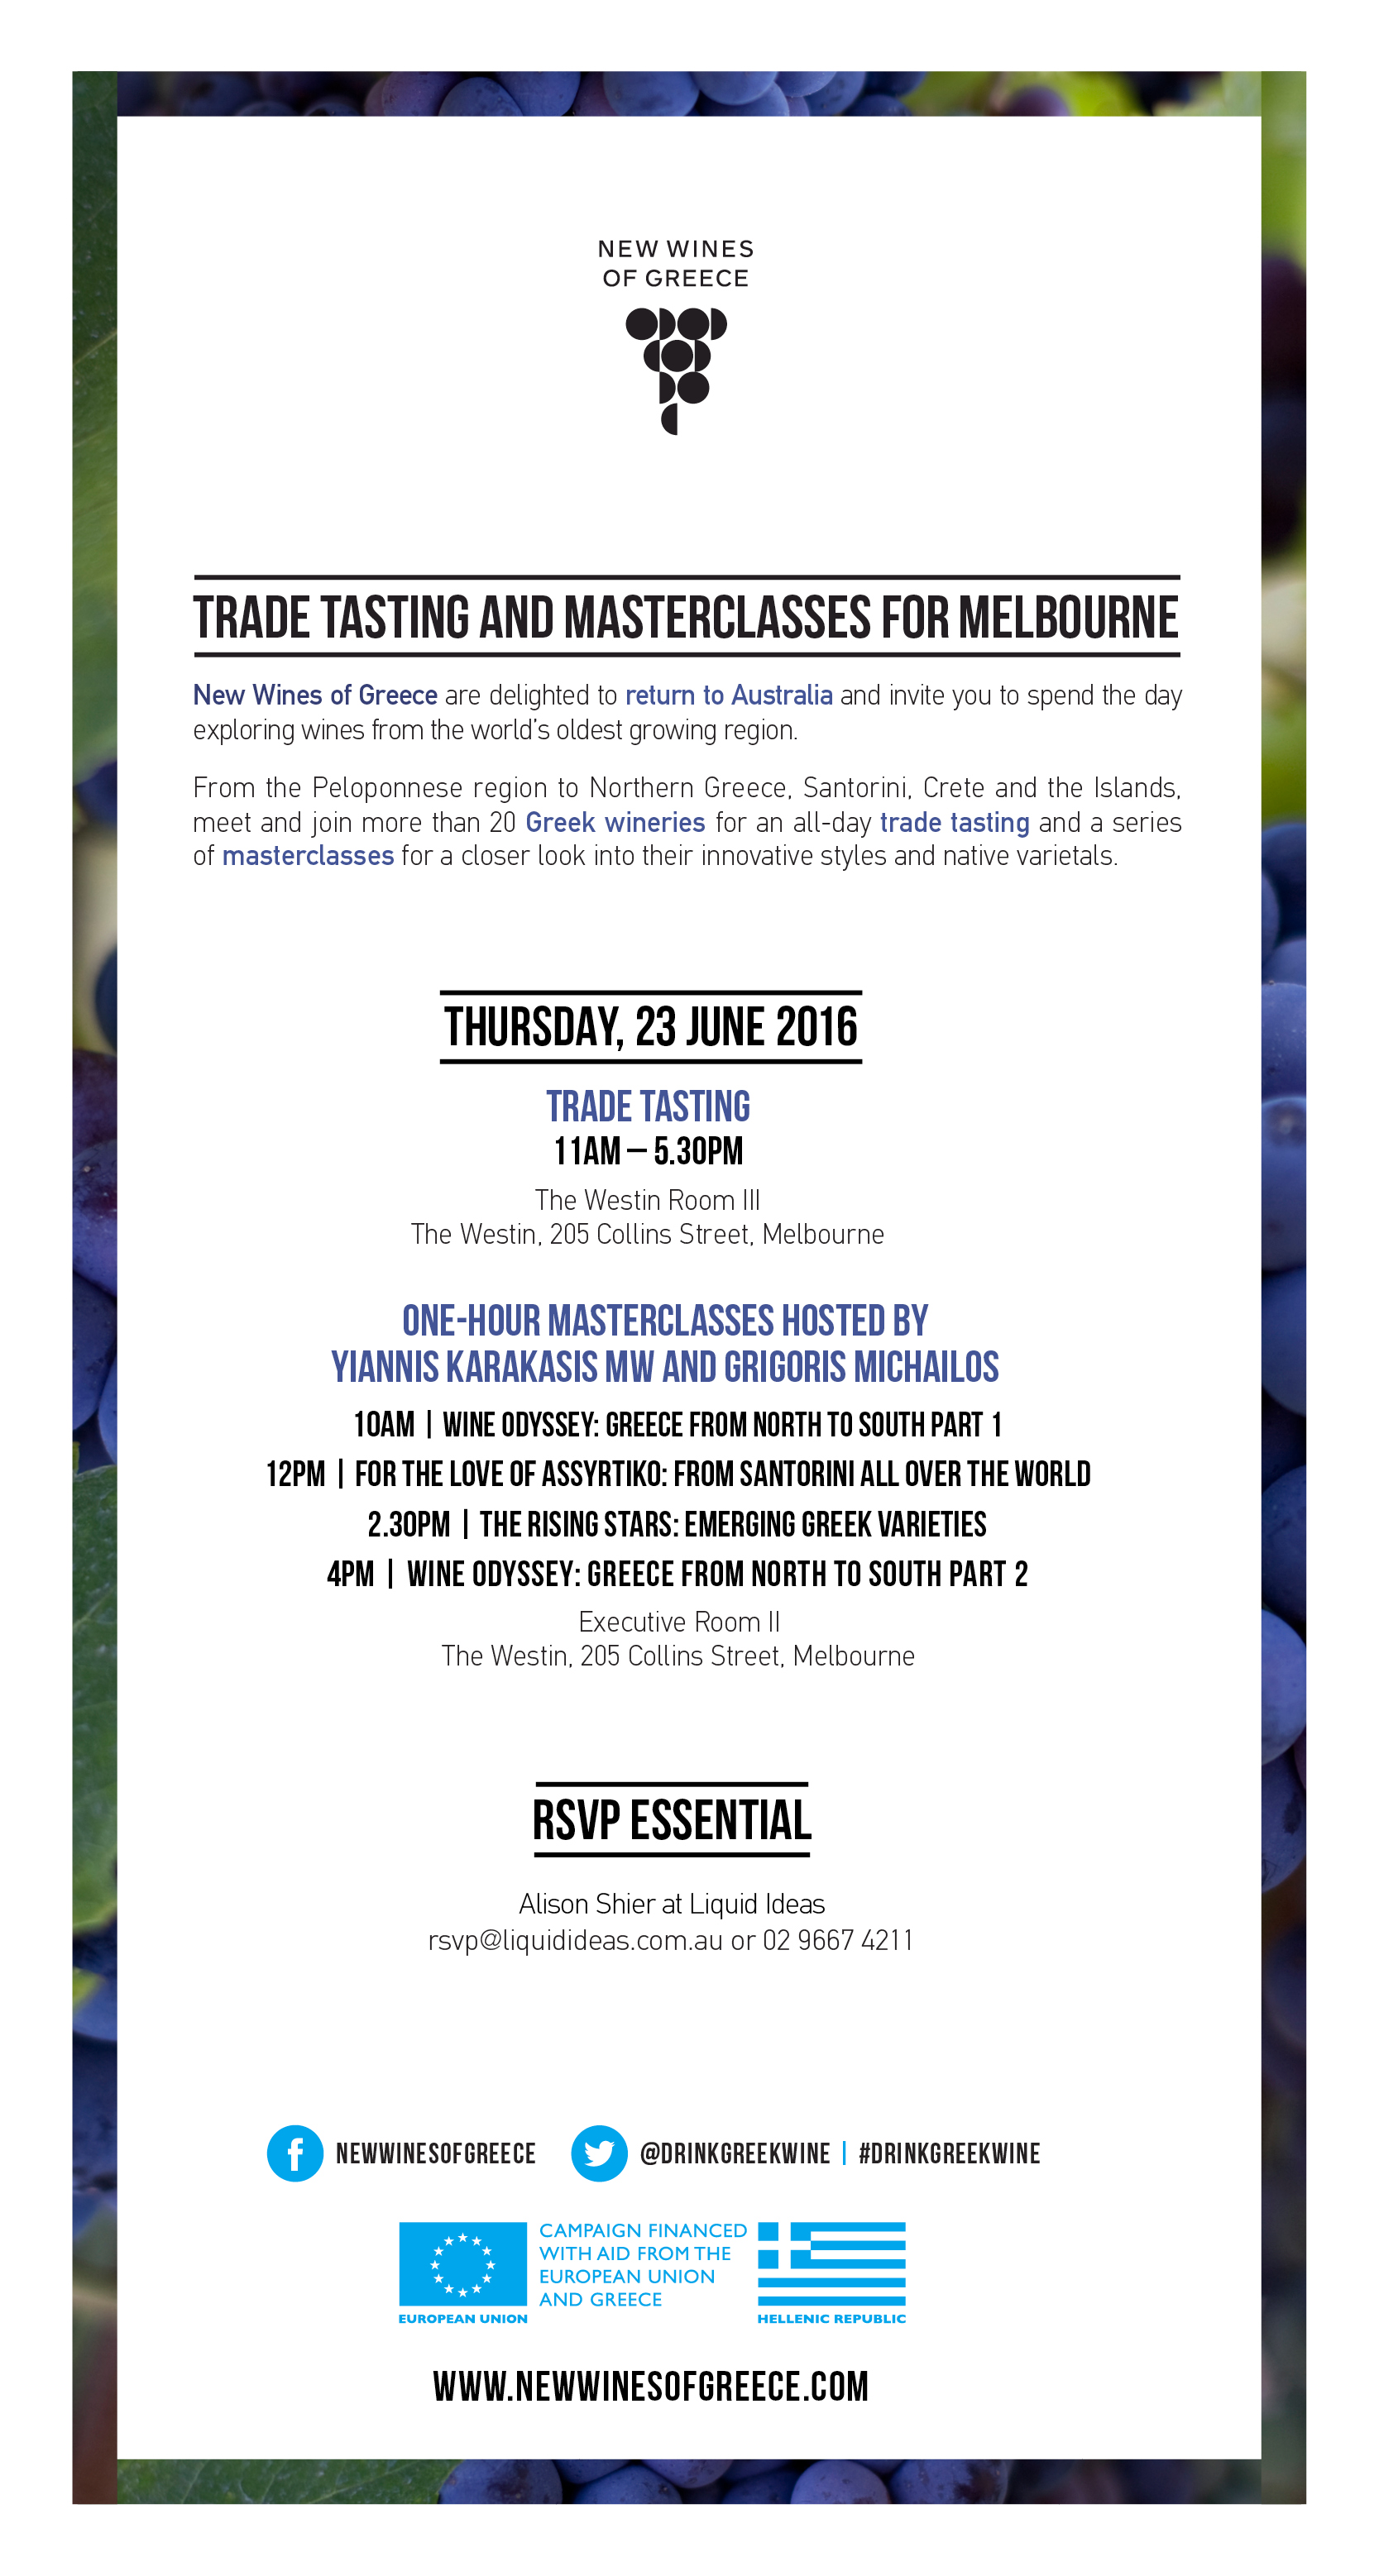 Trade tasting and masterclasses for Melbourne